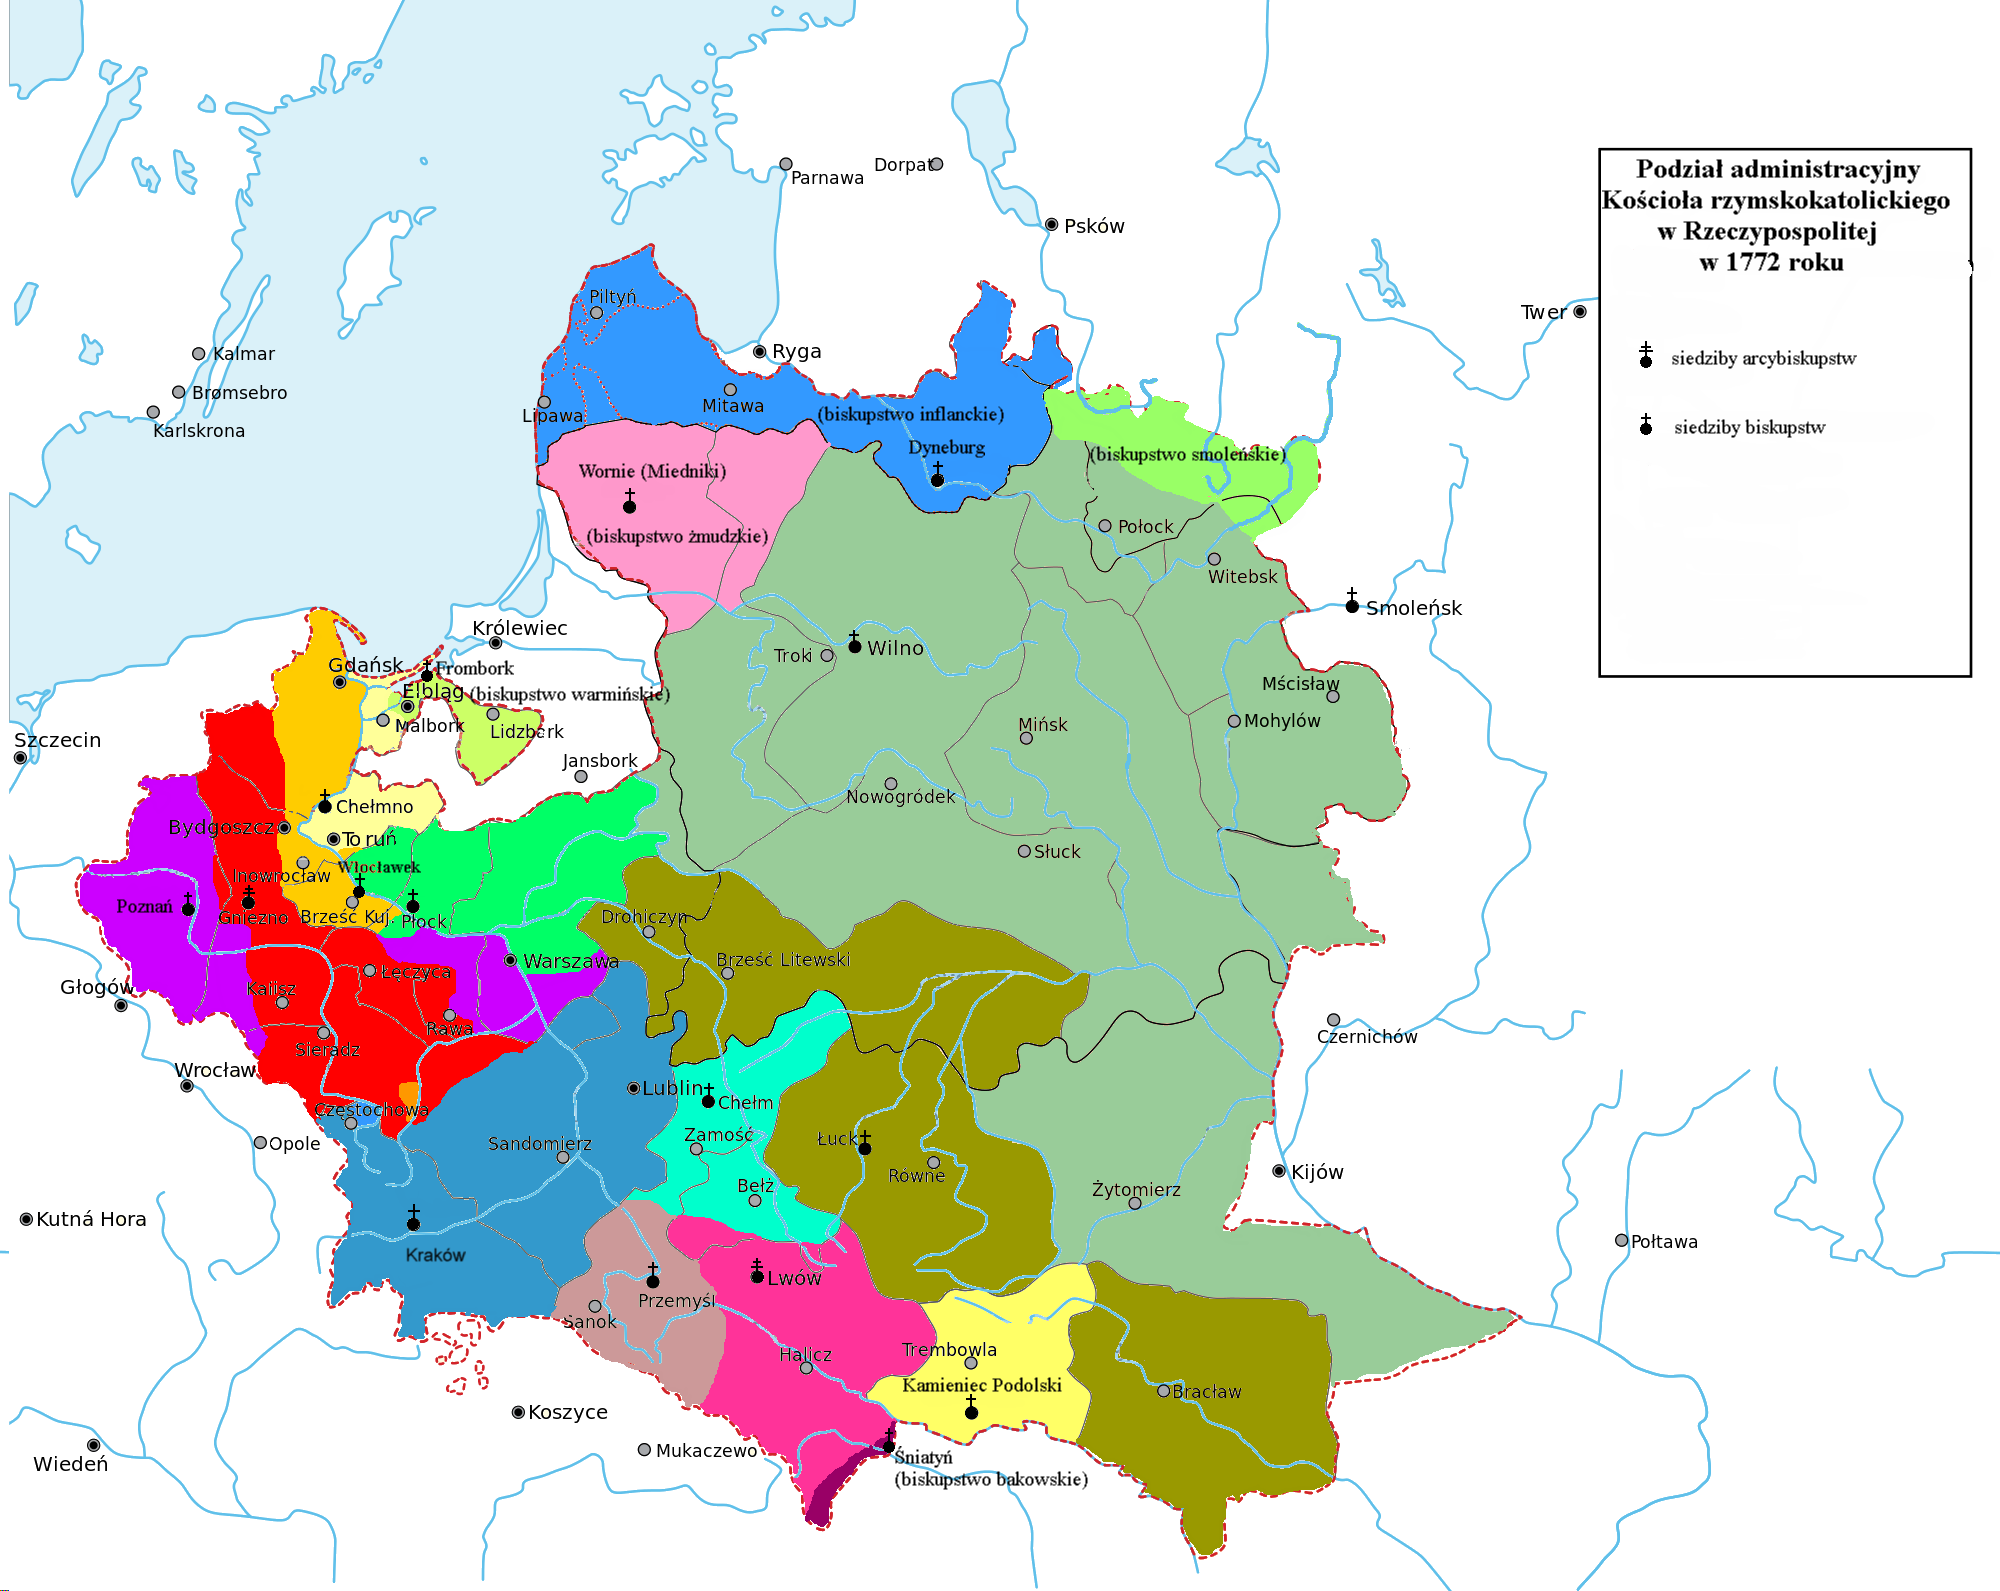 File:Administrative divisions of the Roman Catholic Church in  Polish-Lithuanian Commonwealth in 1772